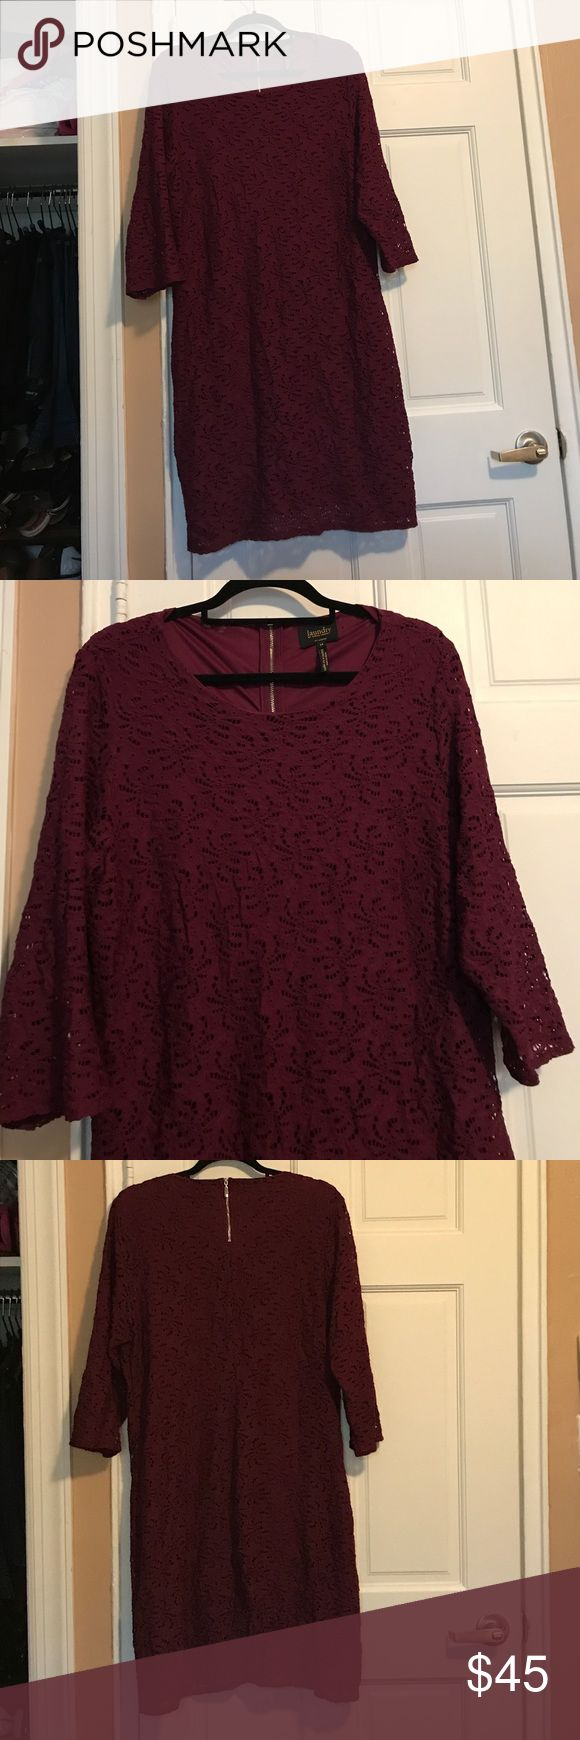 Laundry by Shelli Segal Purple Dress Beautiful dark purple Laundry by Shelli Segal dress. Only worn twice. Like New condition. When worn, comes to right above the knee. Classy, beautiful and flattering! Size 14. Laundry by Shelli Segal Dresses Midi